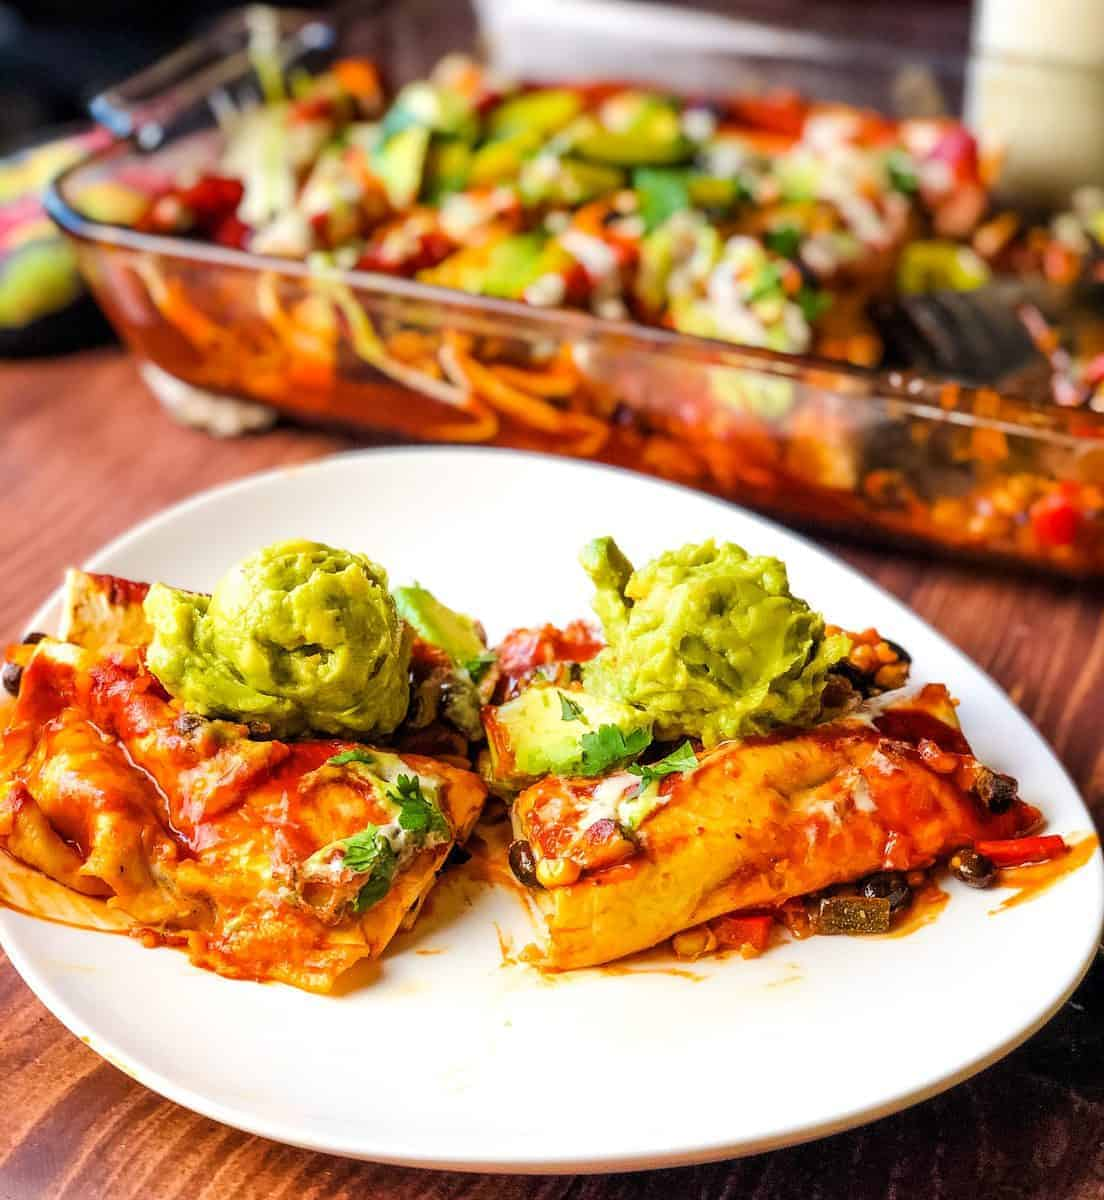 black bean enchiladas on white plate with casserole dish in background